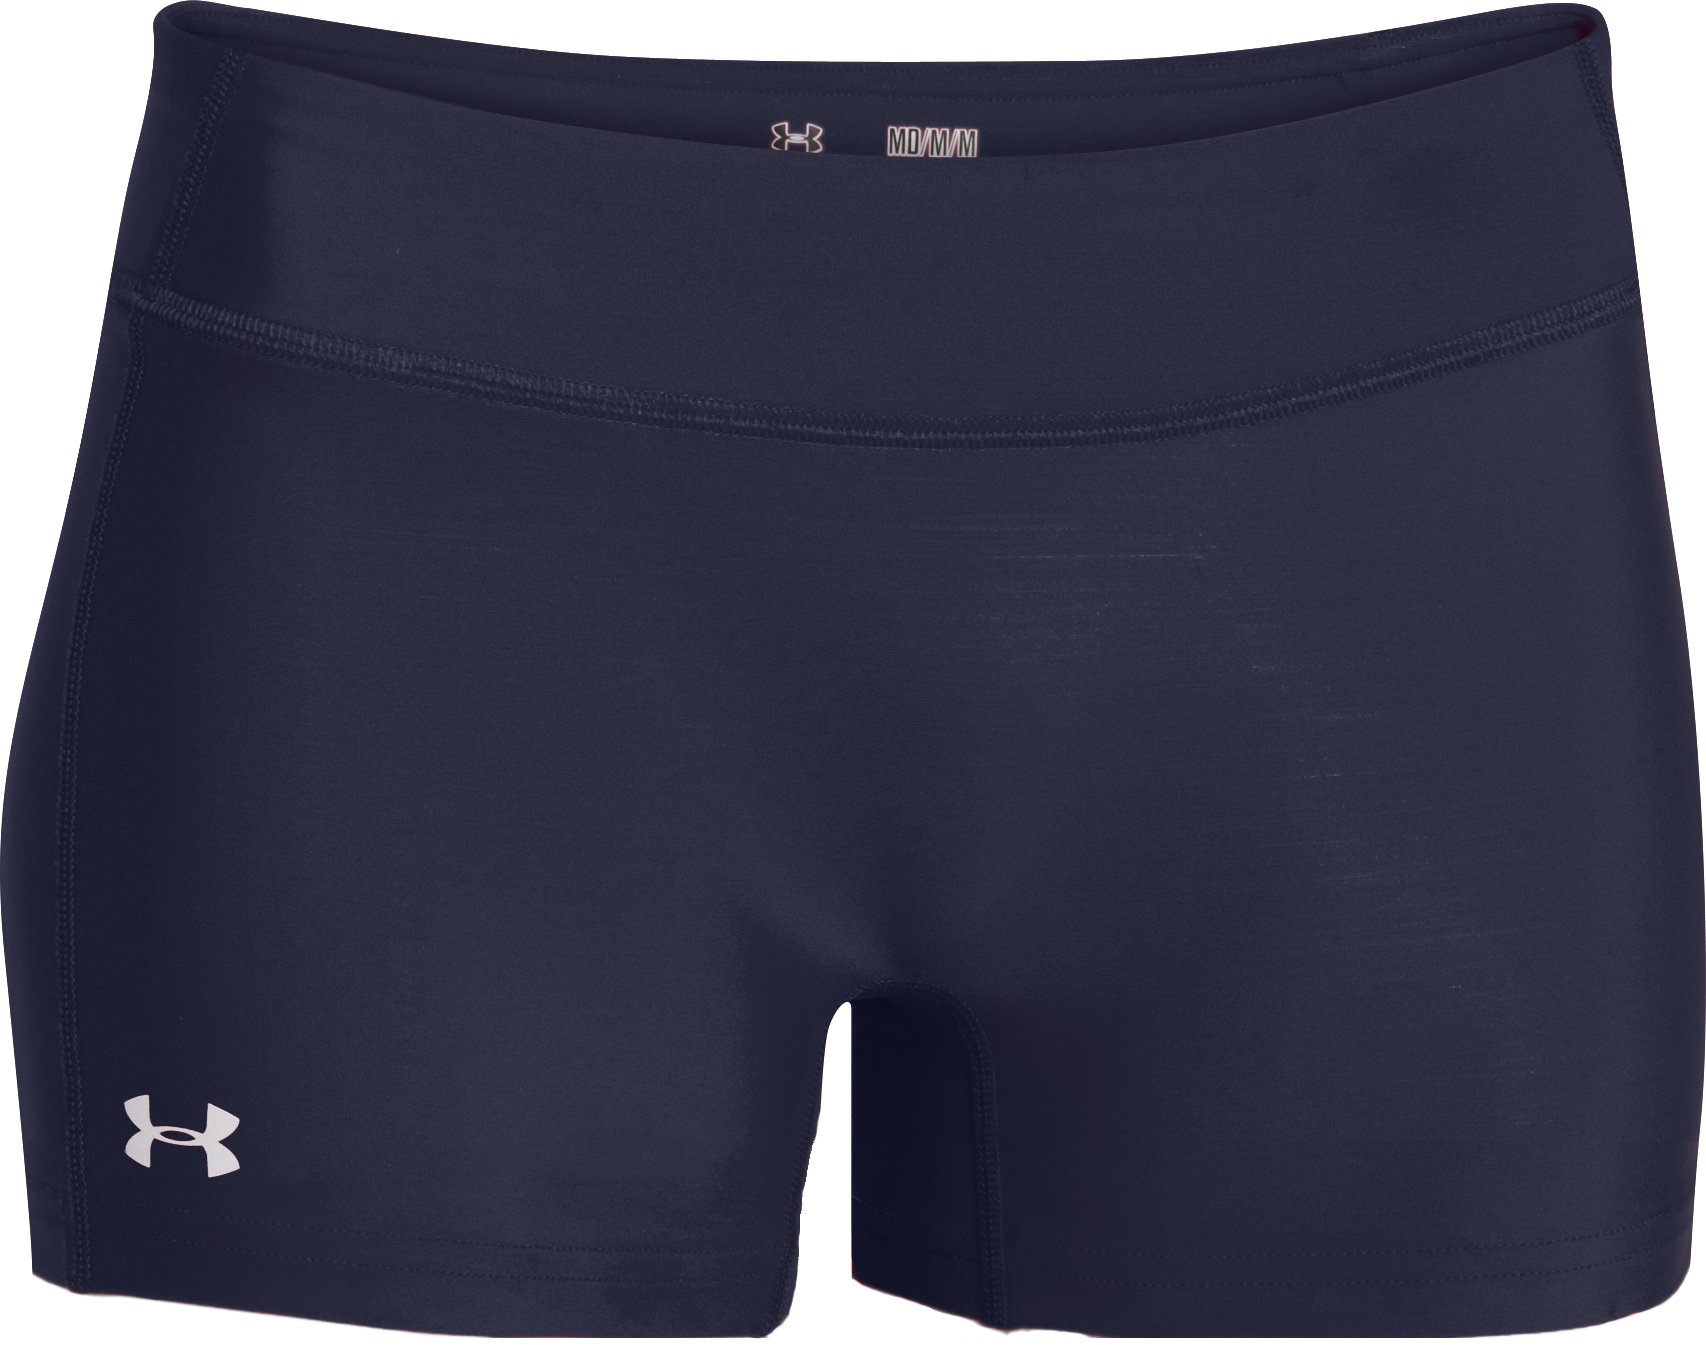 "Women's UA React 3"" Volleyball Shorts, Midnight Navy"